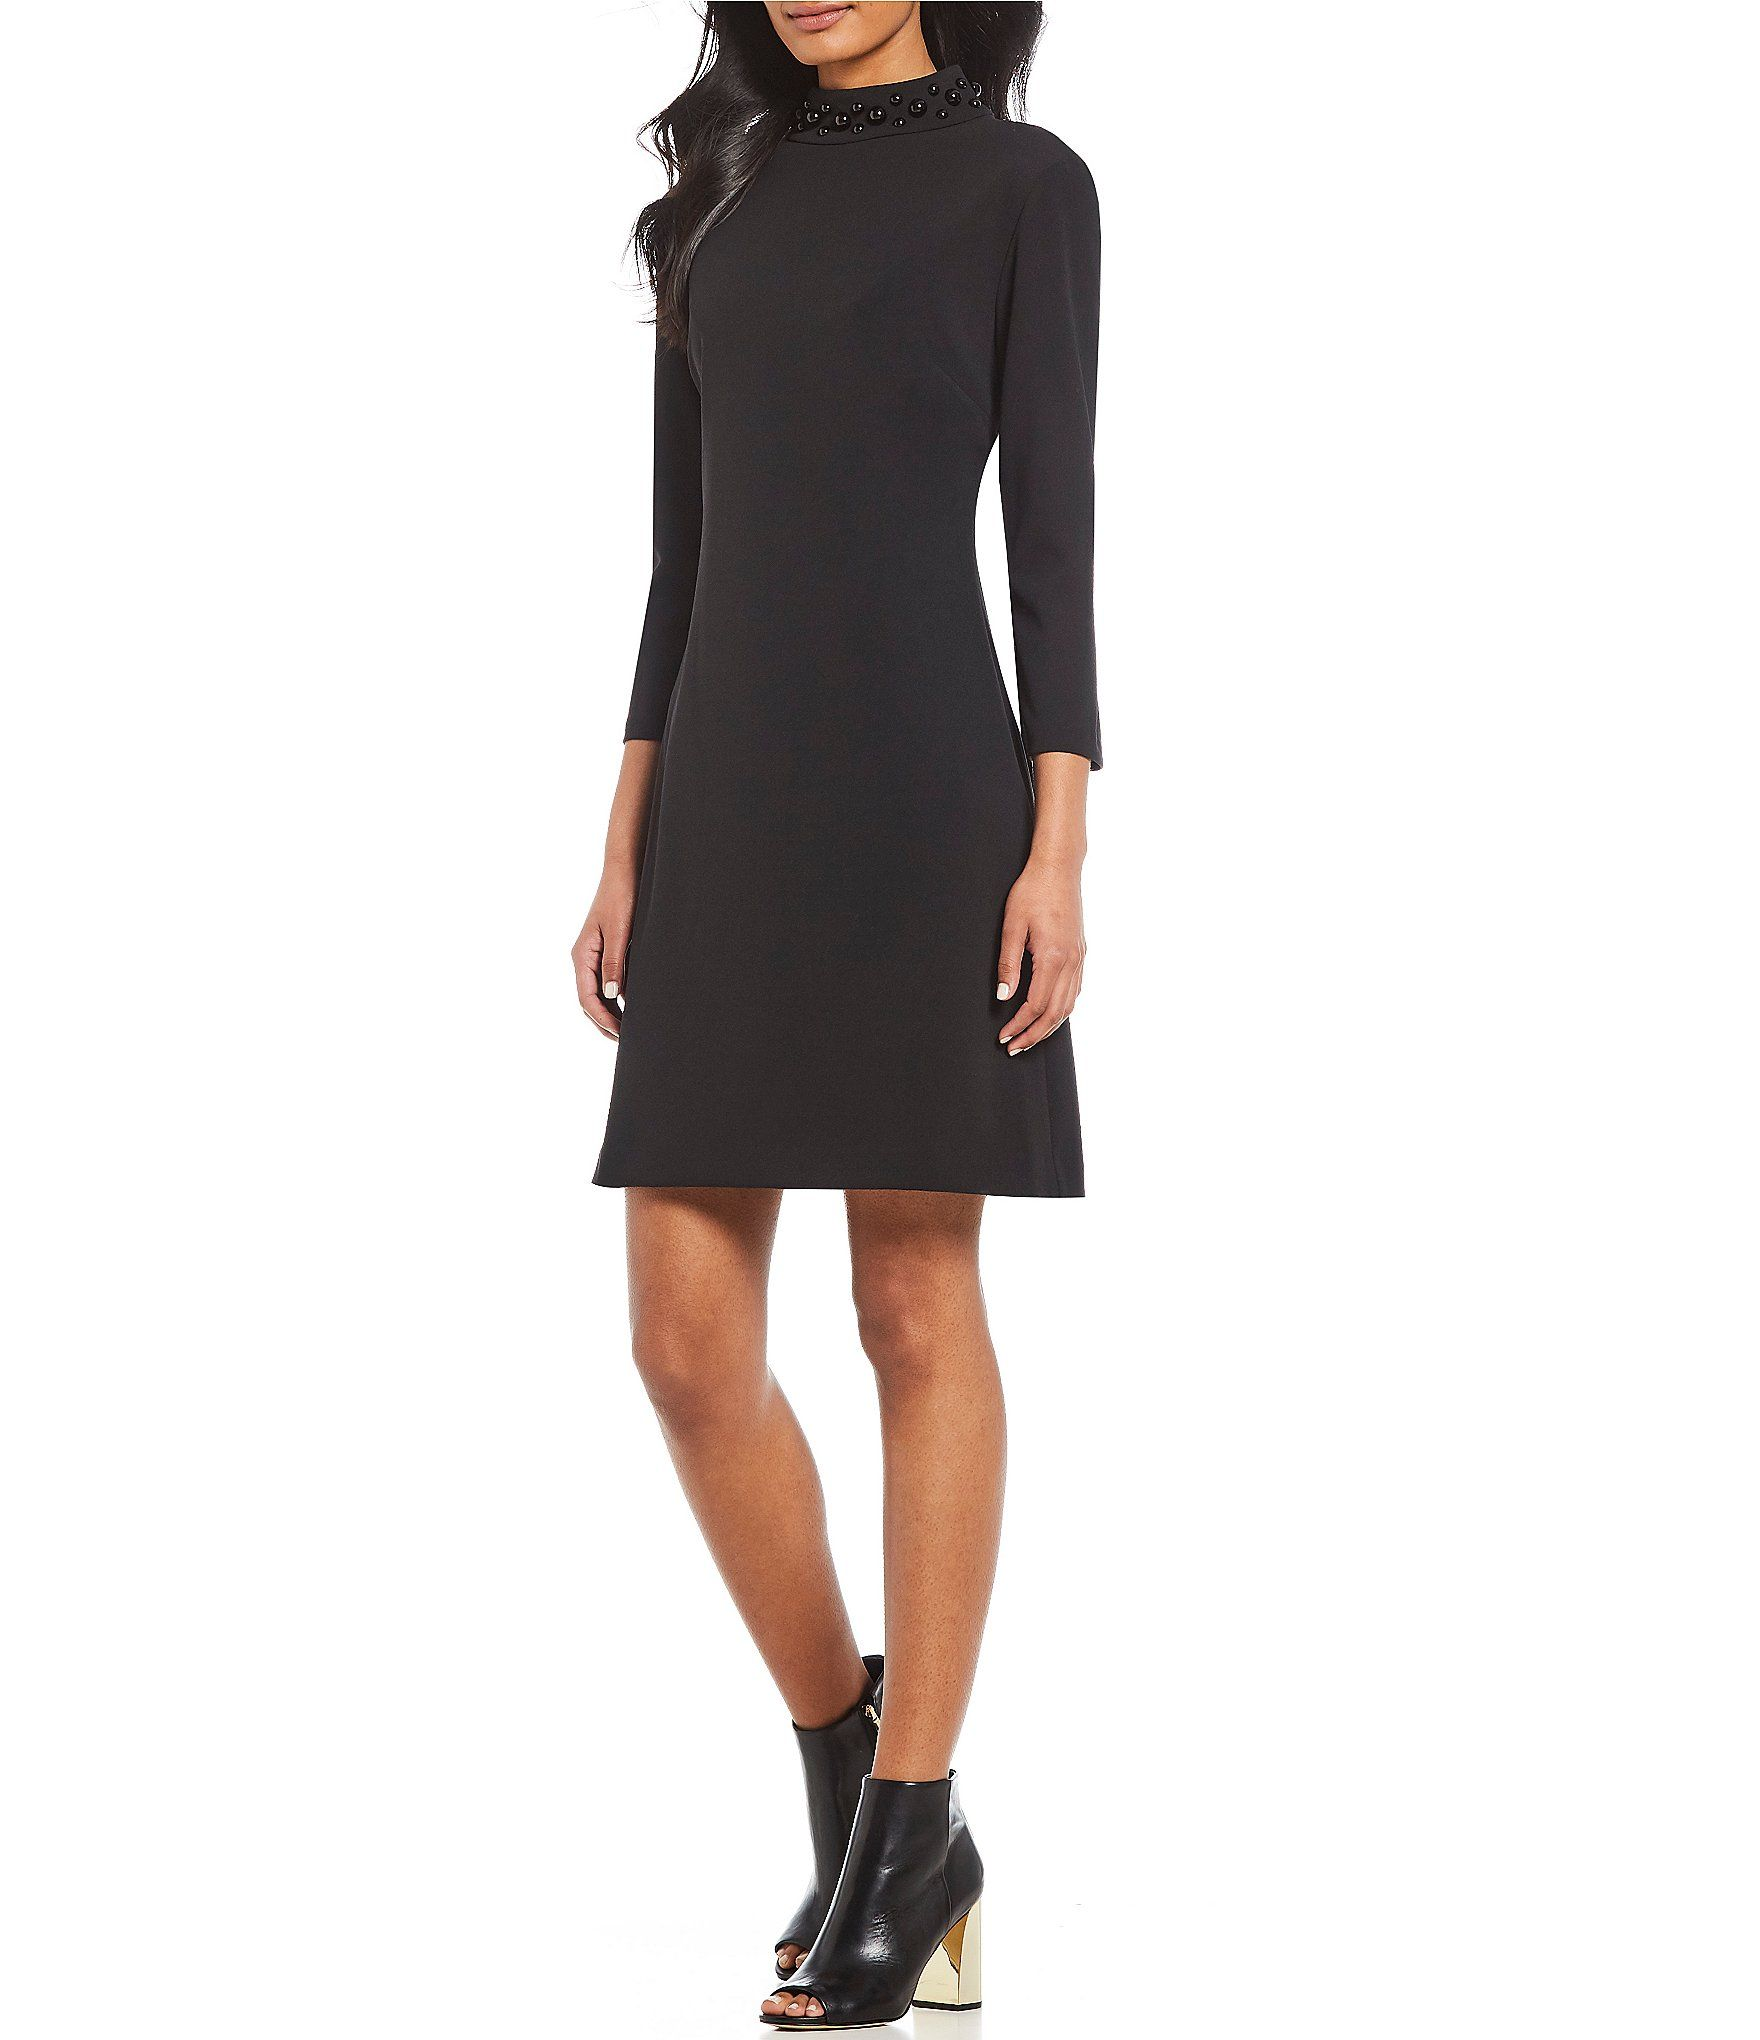 3caf88465ea Shop for KARL LAGERFELD PARIS Pearl Mock Neck A-Line Dress at Dillards.com.  Visit Dillards.com to find clothing